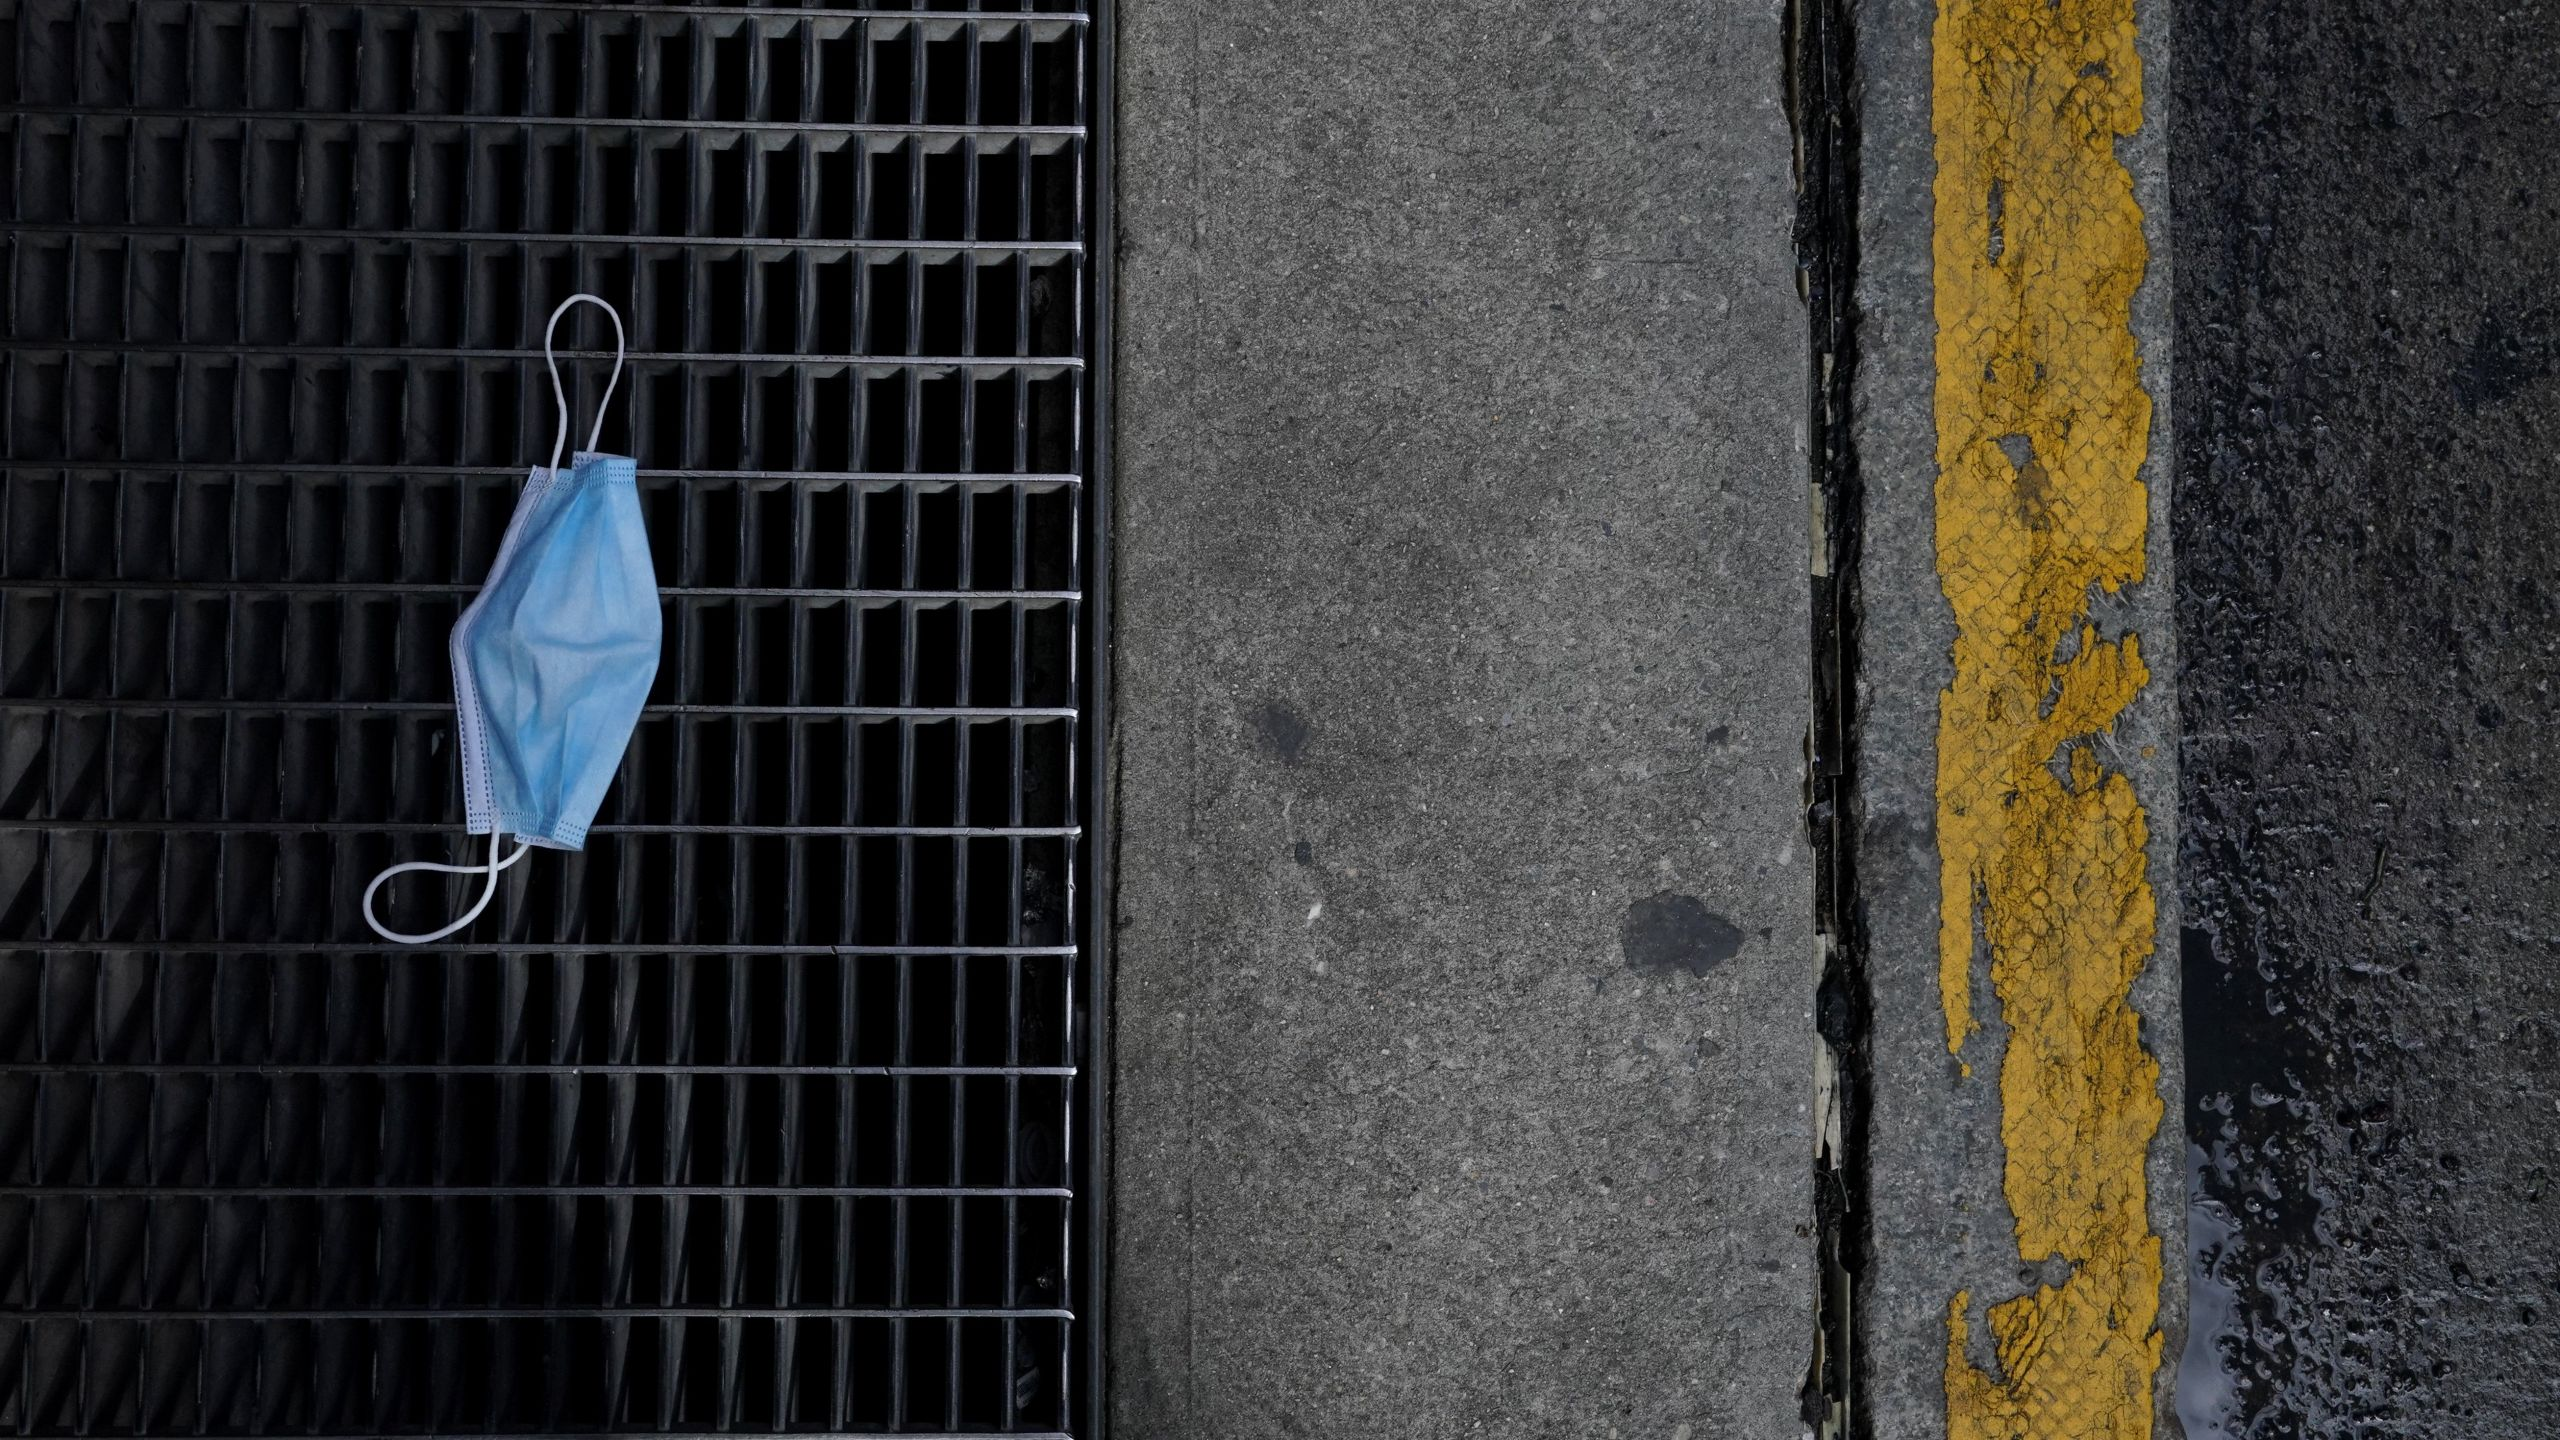 This file photo shows a discarded surgical mask on the ground of Lexington Avenue in the Upper East Side of New York on Oct. 2, 2020. (TIMOTHY A. CLARY/AFP via Getty Images)